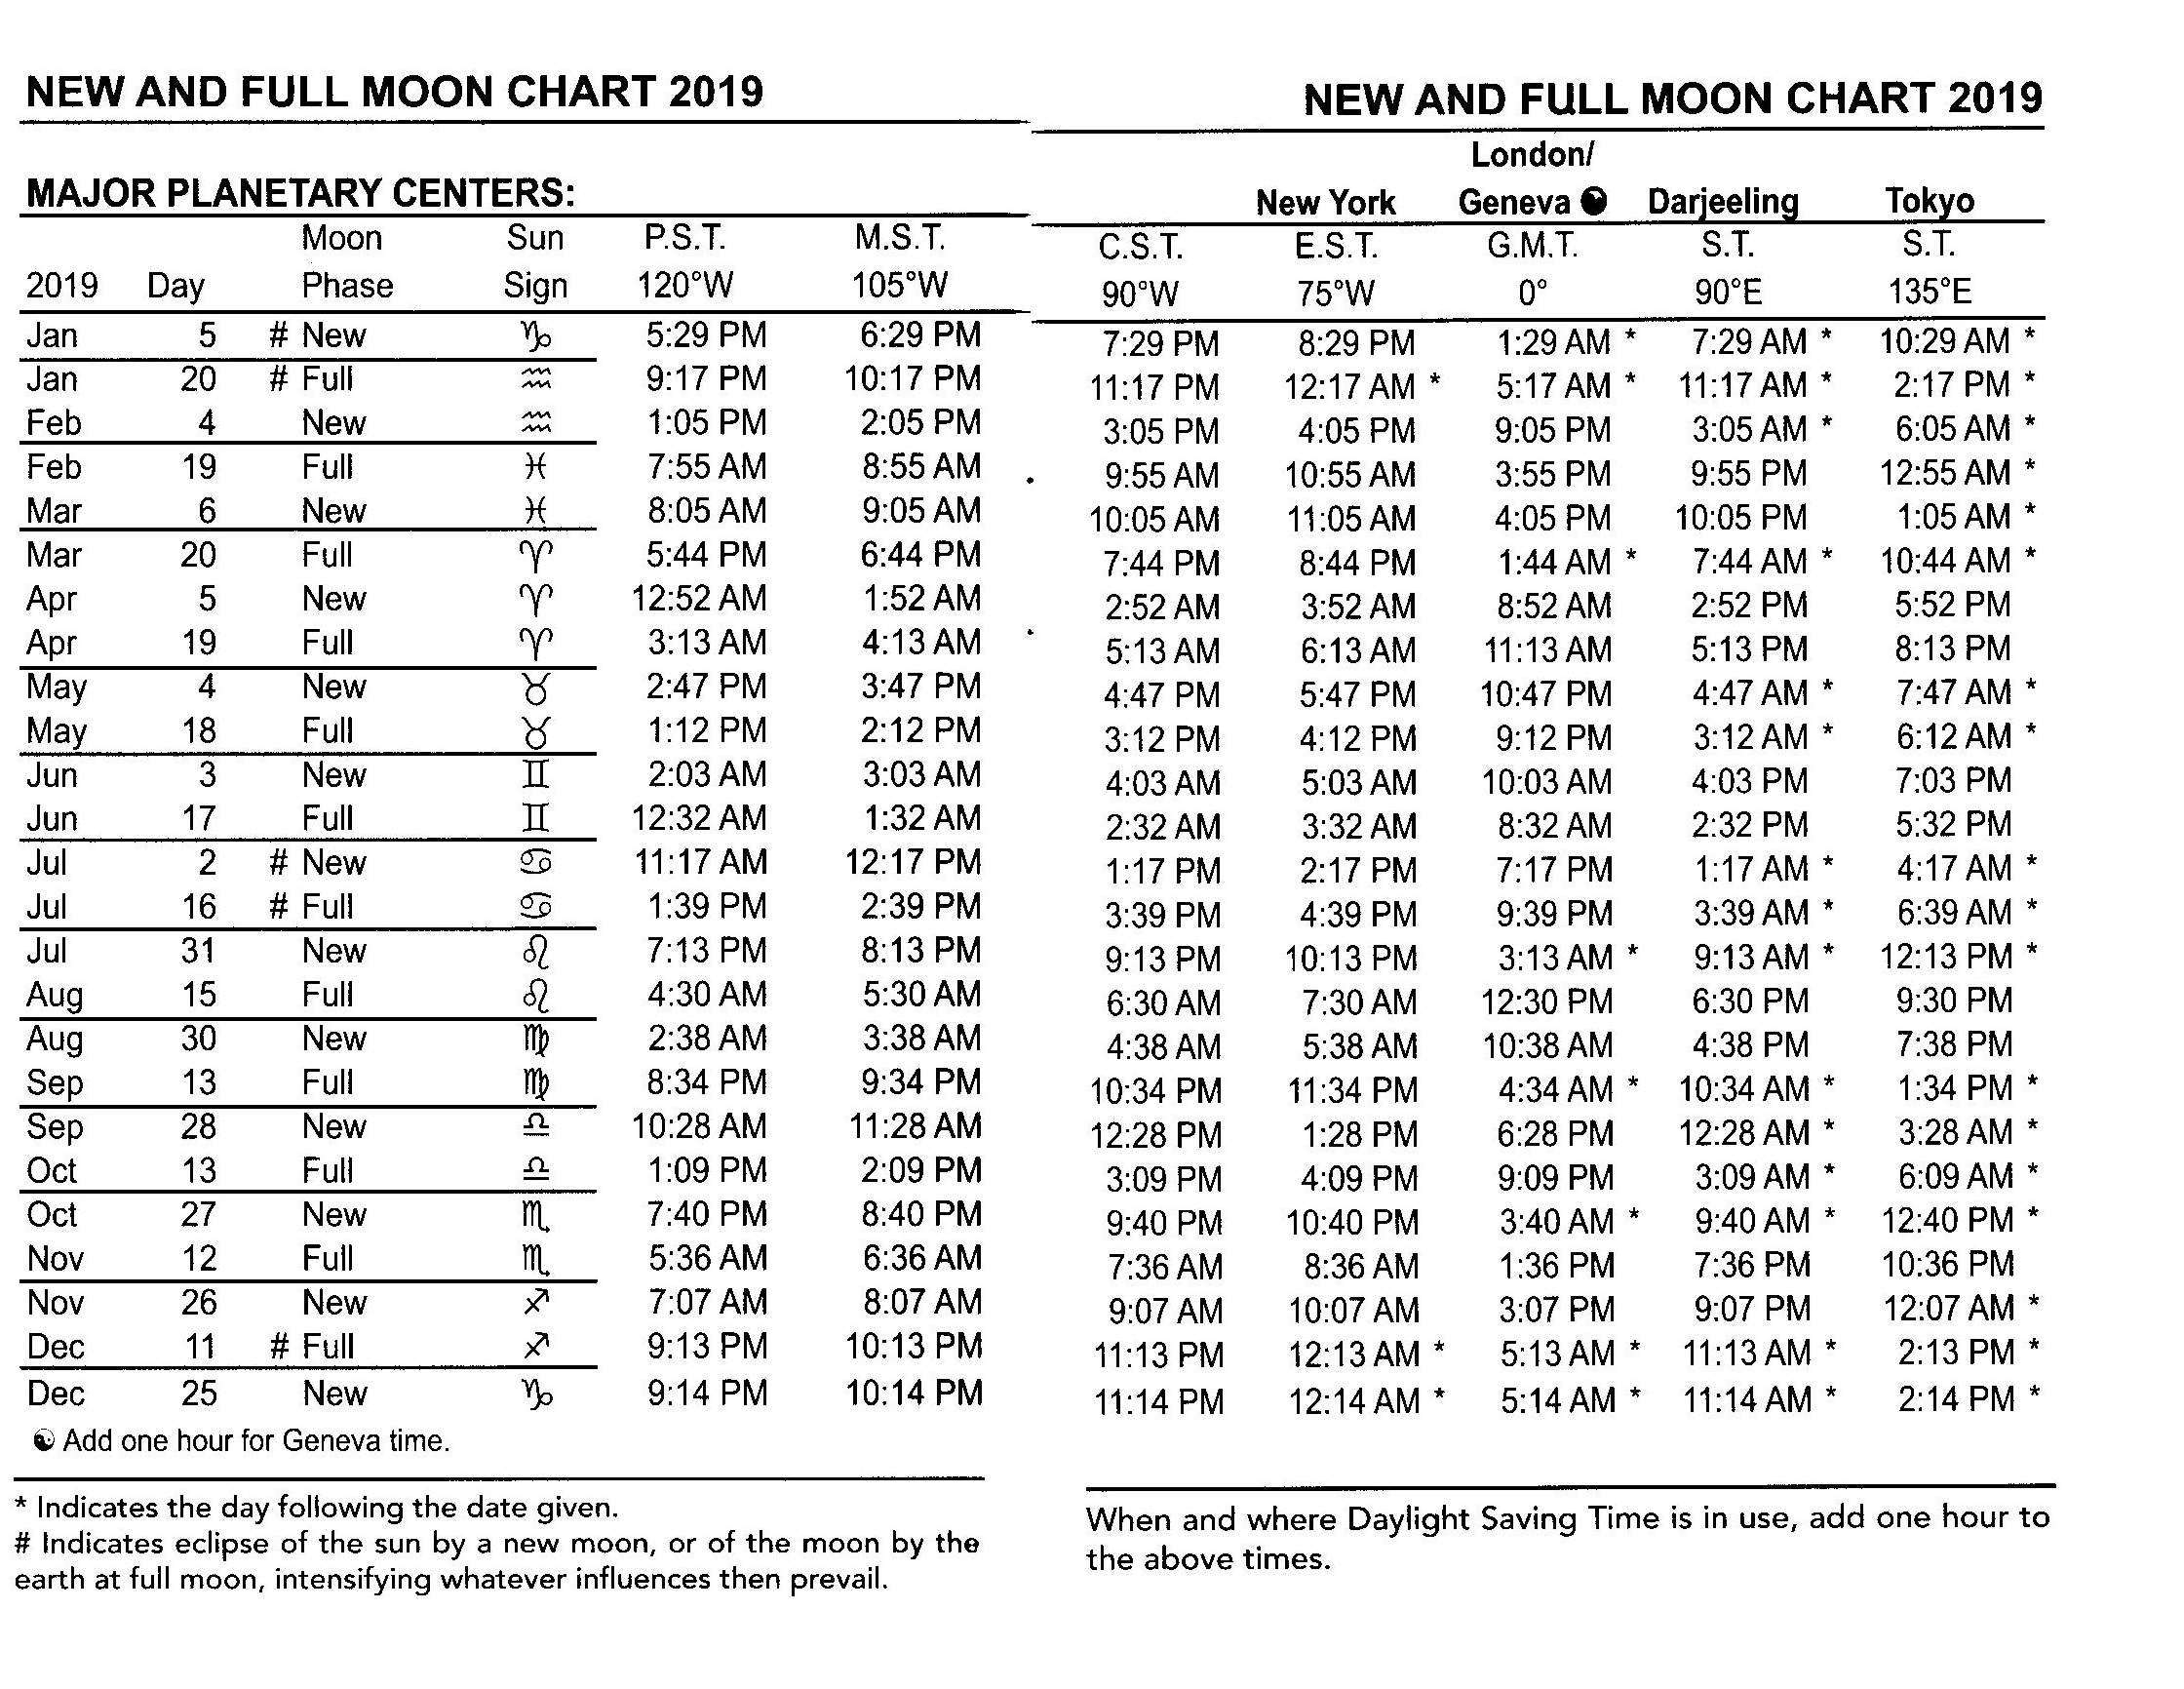 2019 Full and New Moon Times 001.jpg